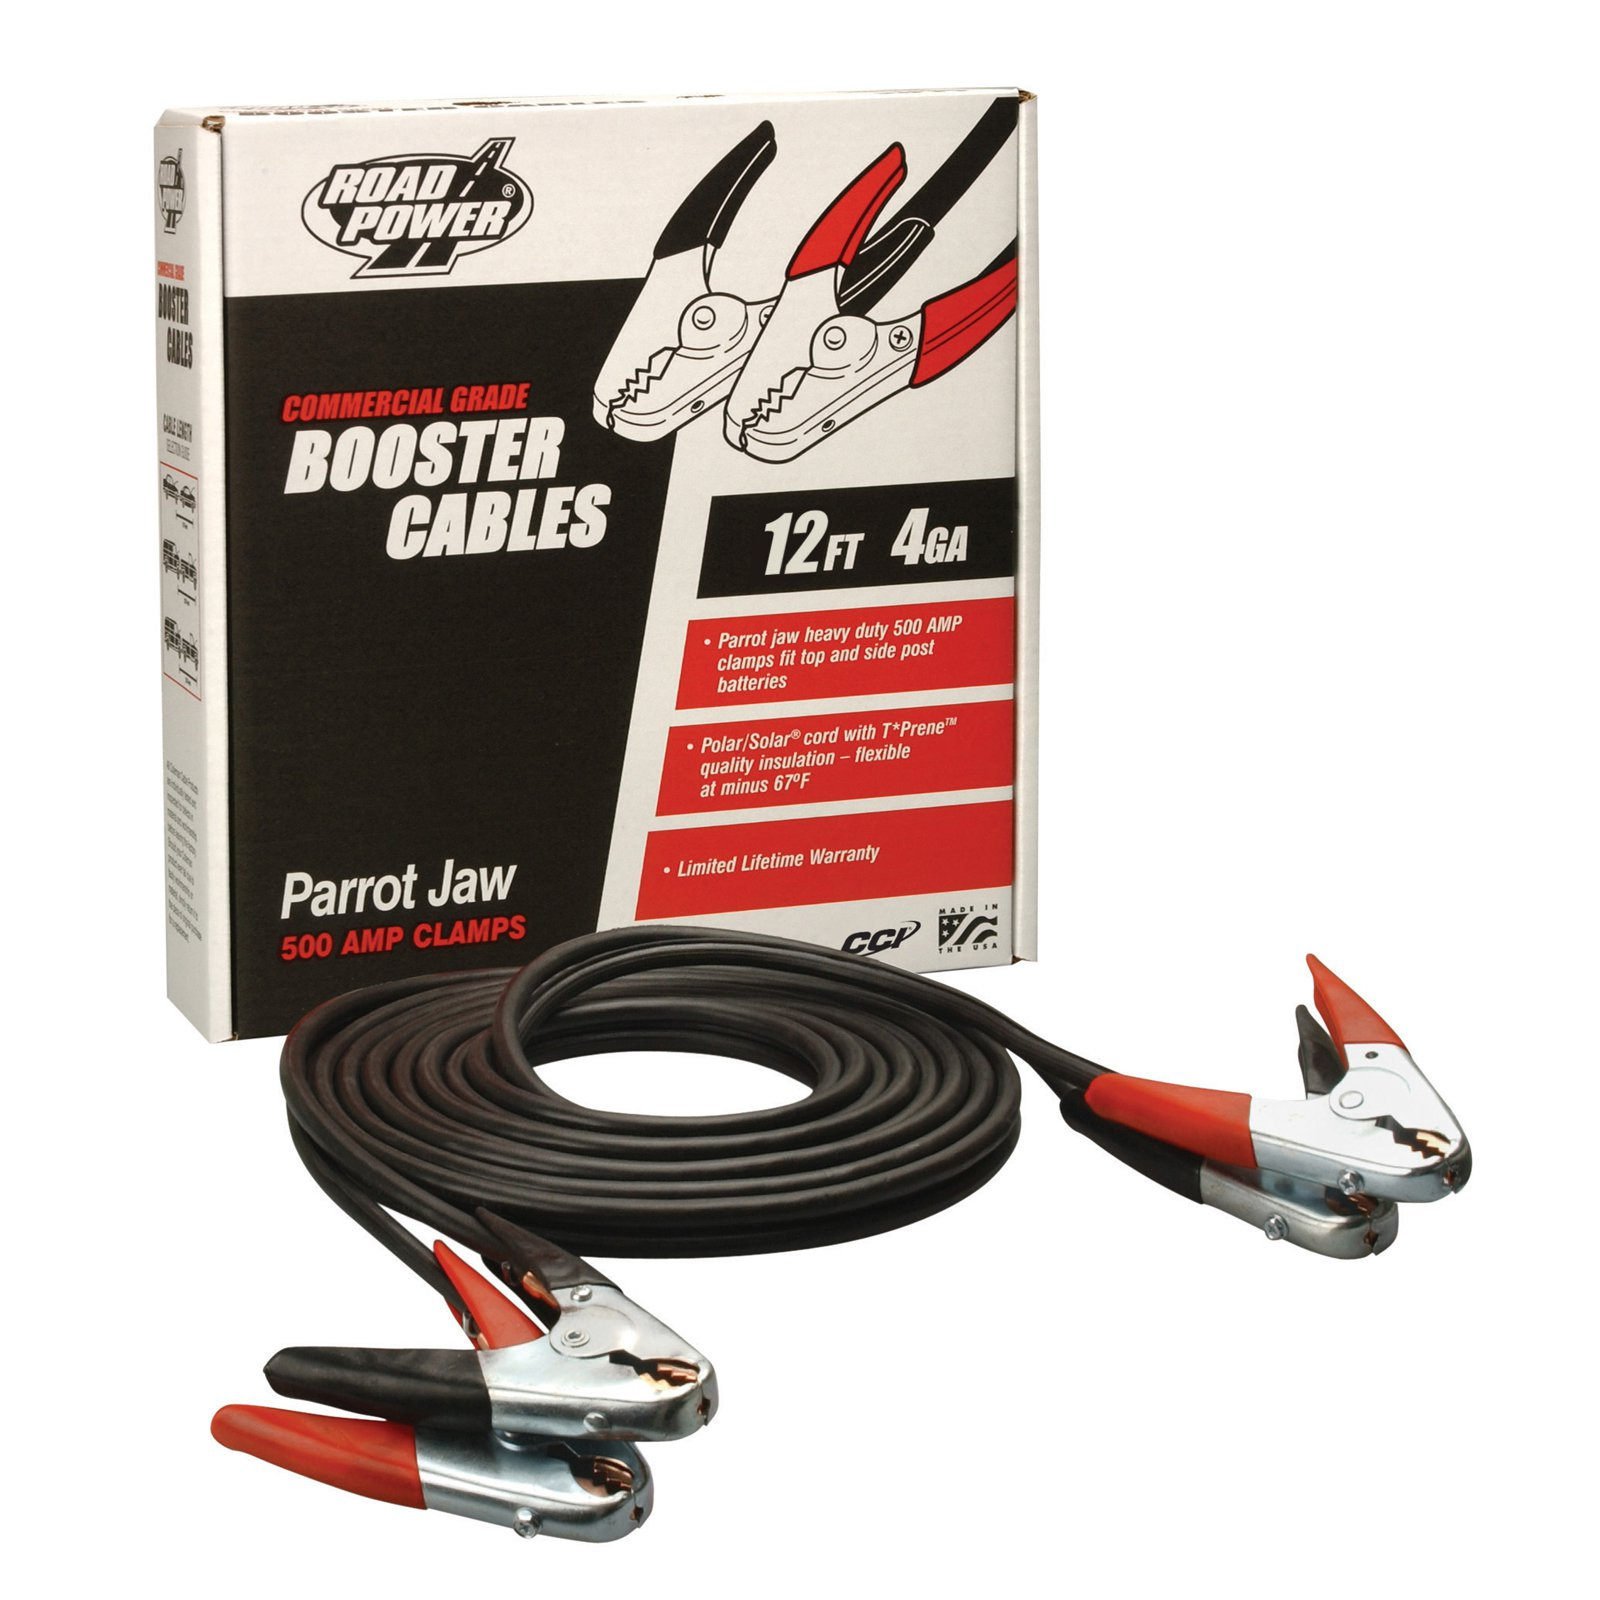 Coleman Cable 08765 12' Heavy-Duty Truck and Auto Battery Booster Cables with Parrot Jaw Clamps, 4-Gauge